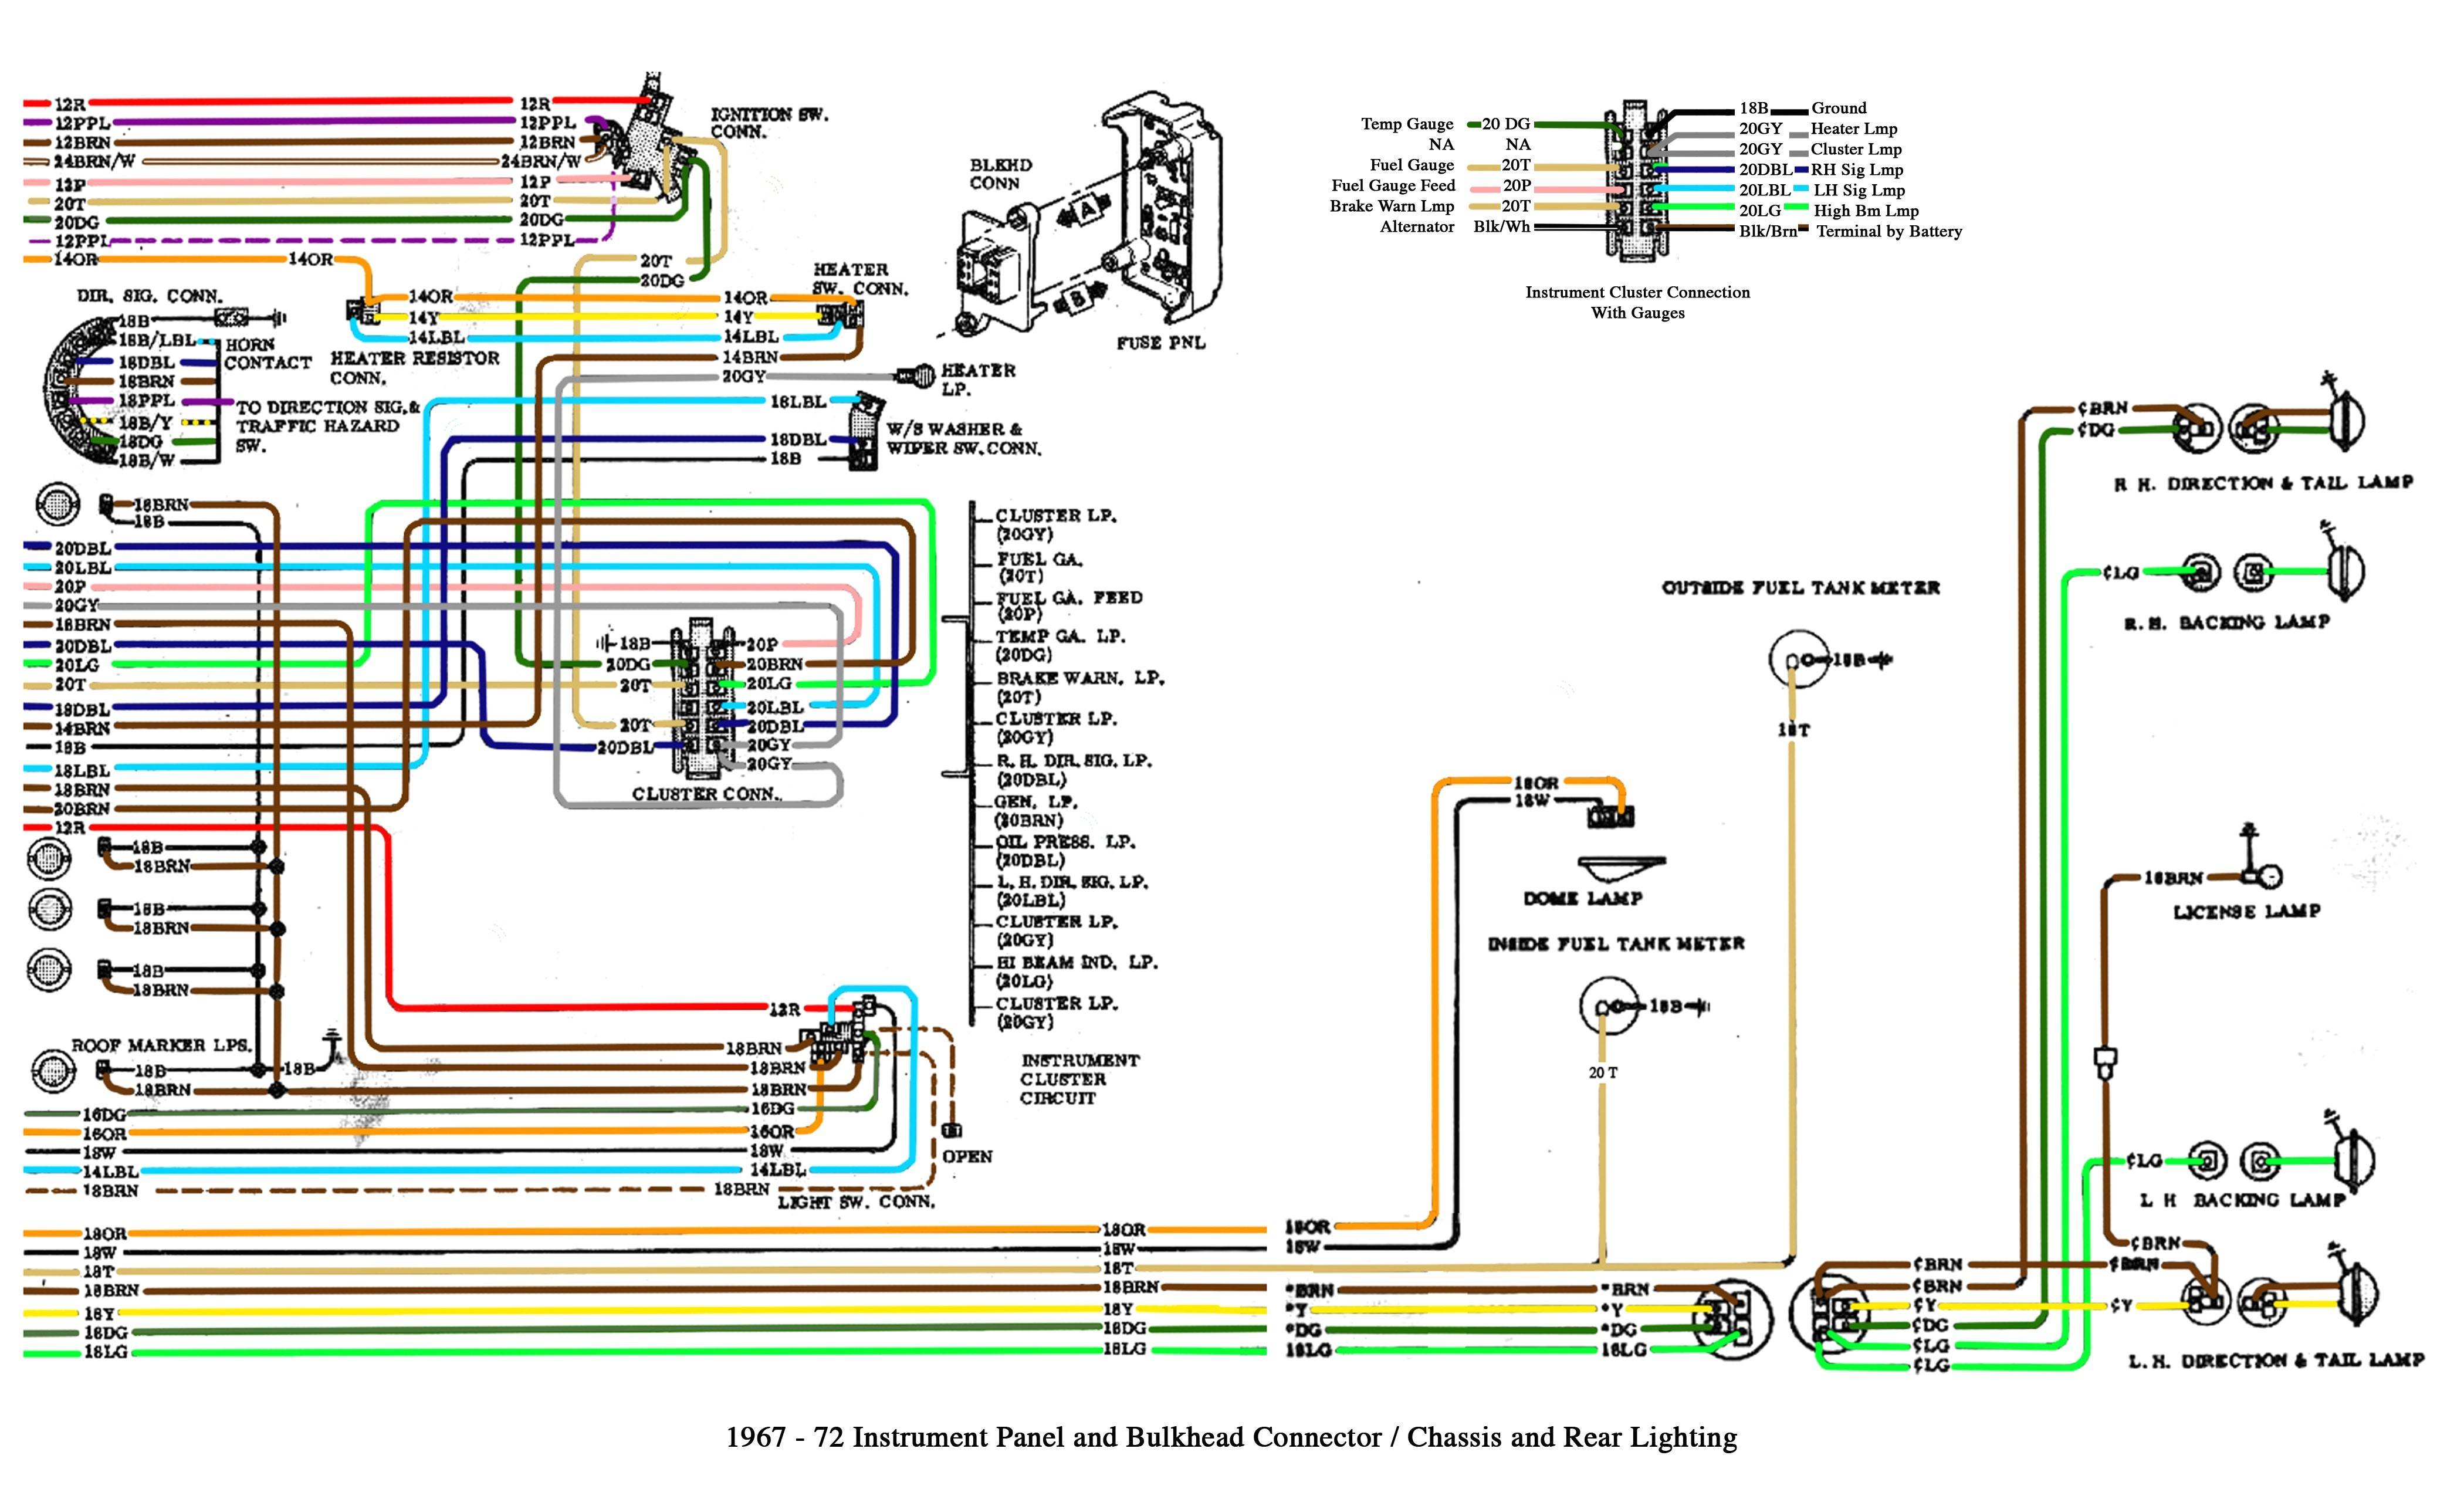 2005 Chevy Silverado Trailer Wiring Diagram Depilacija Me Remarkable